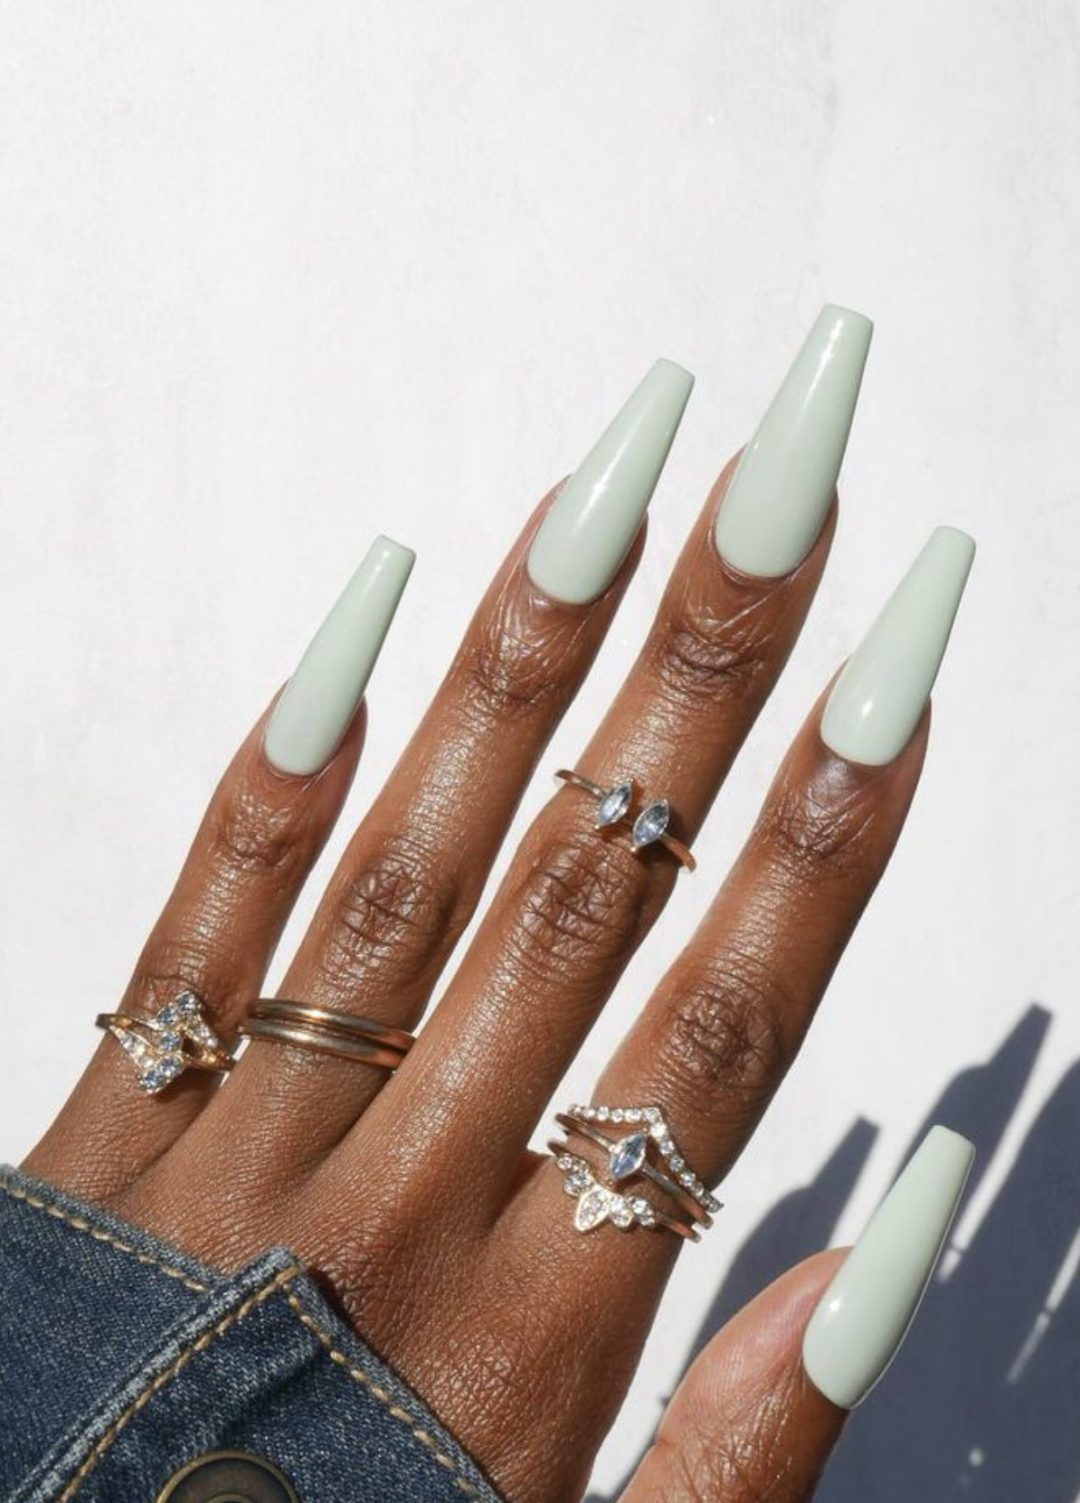 Long sage green press on nails in coffin shape